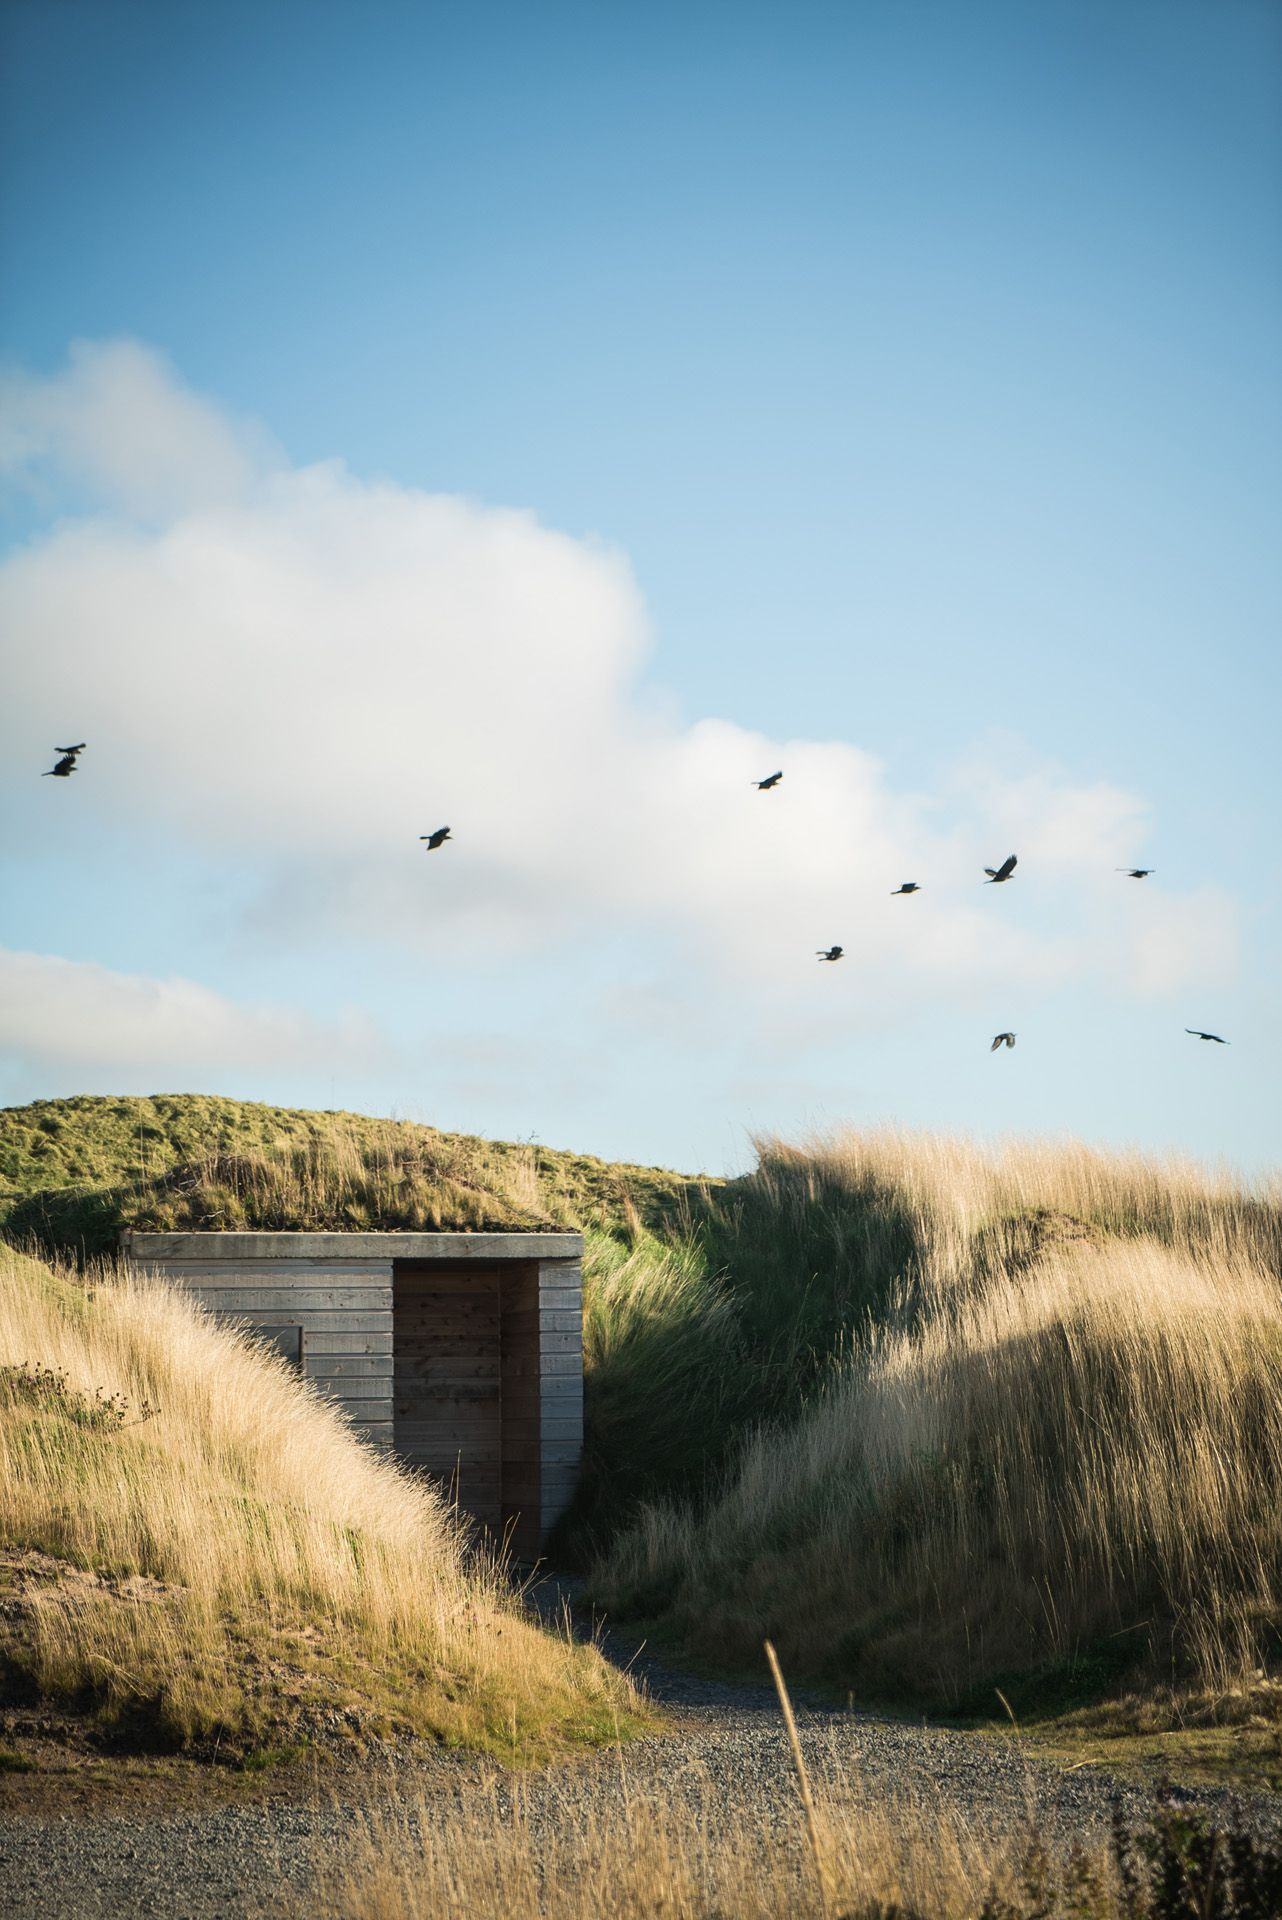 seaside wooden cabin surrounded by high grass by Bruno Florin for Mercedes Magazine